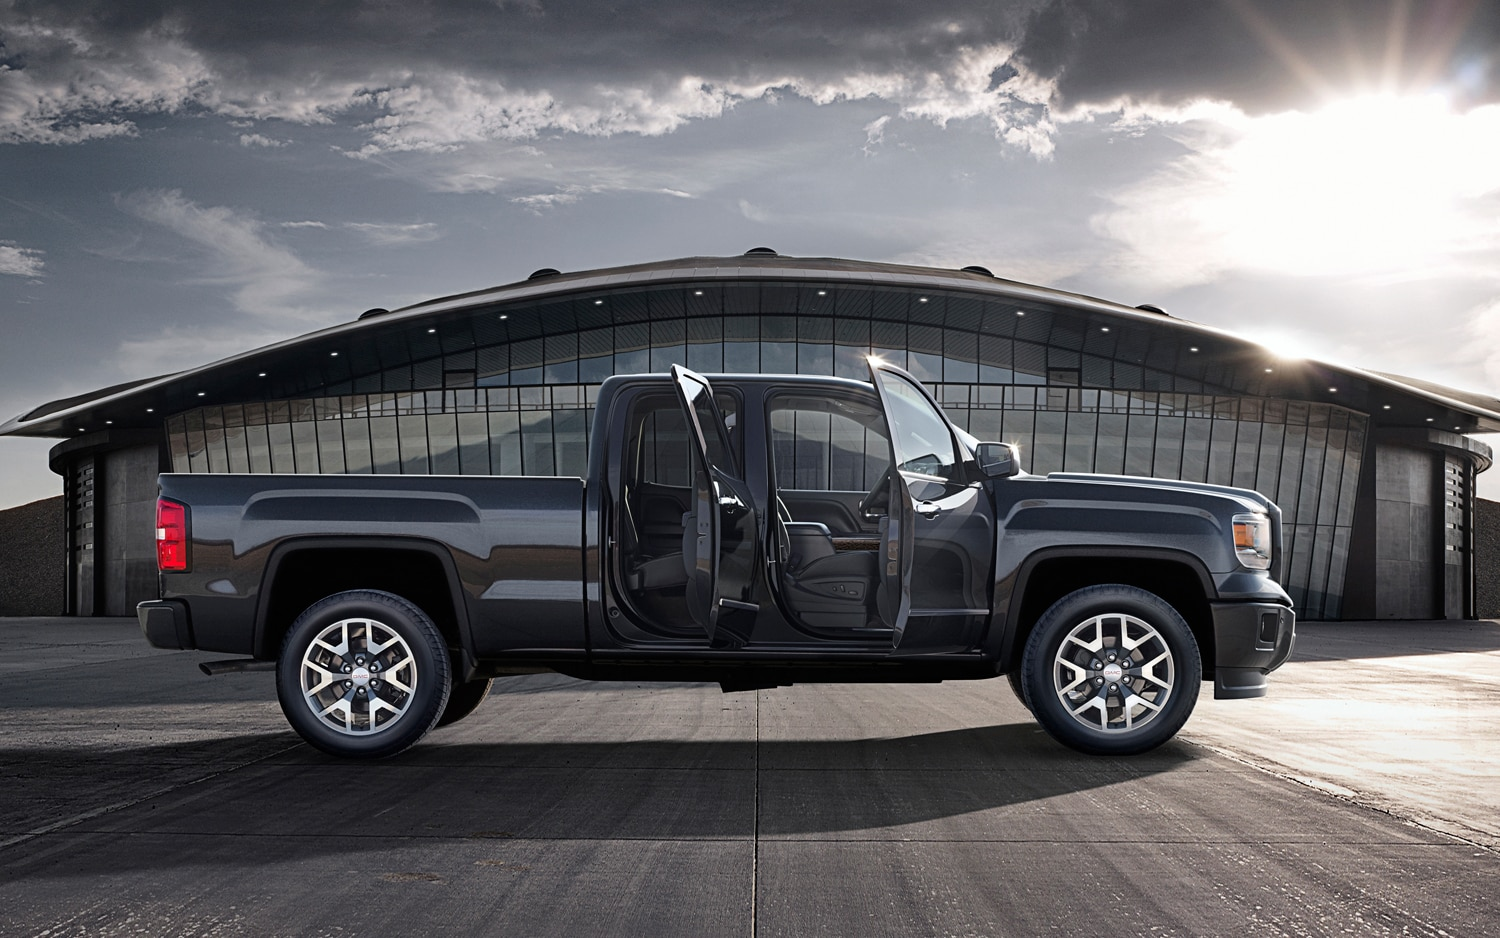 2014 GMC Sierra Allterrain Side Profile Doors Open